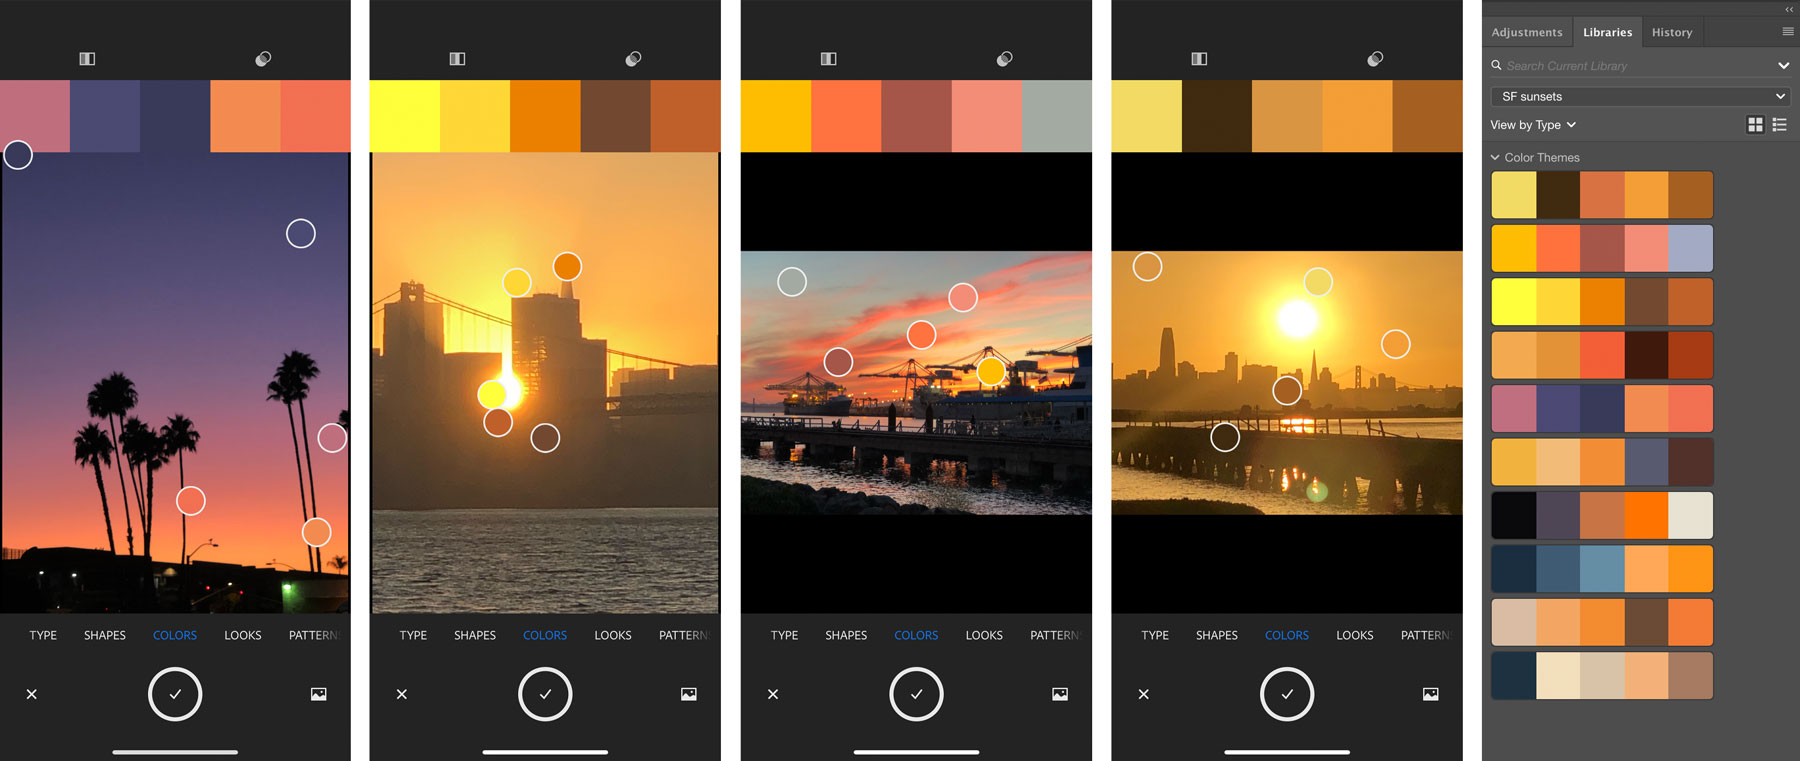 Adobe Capture screens of sunsets, and the 10 color themes in an Adobe app